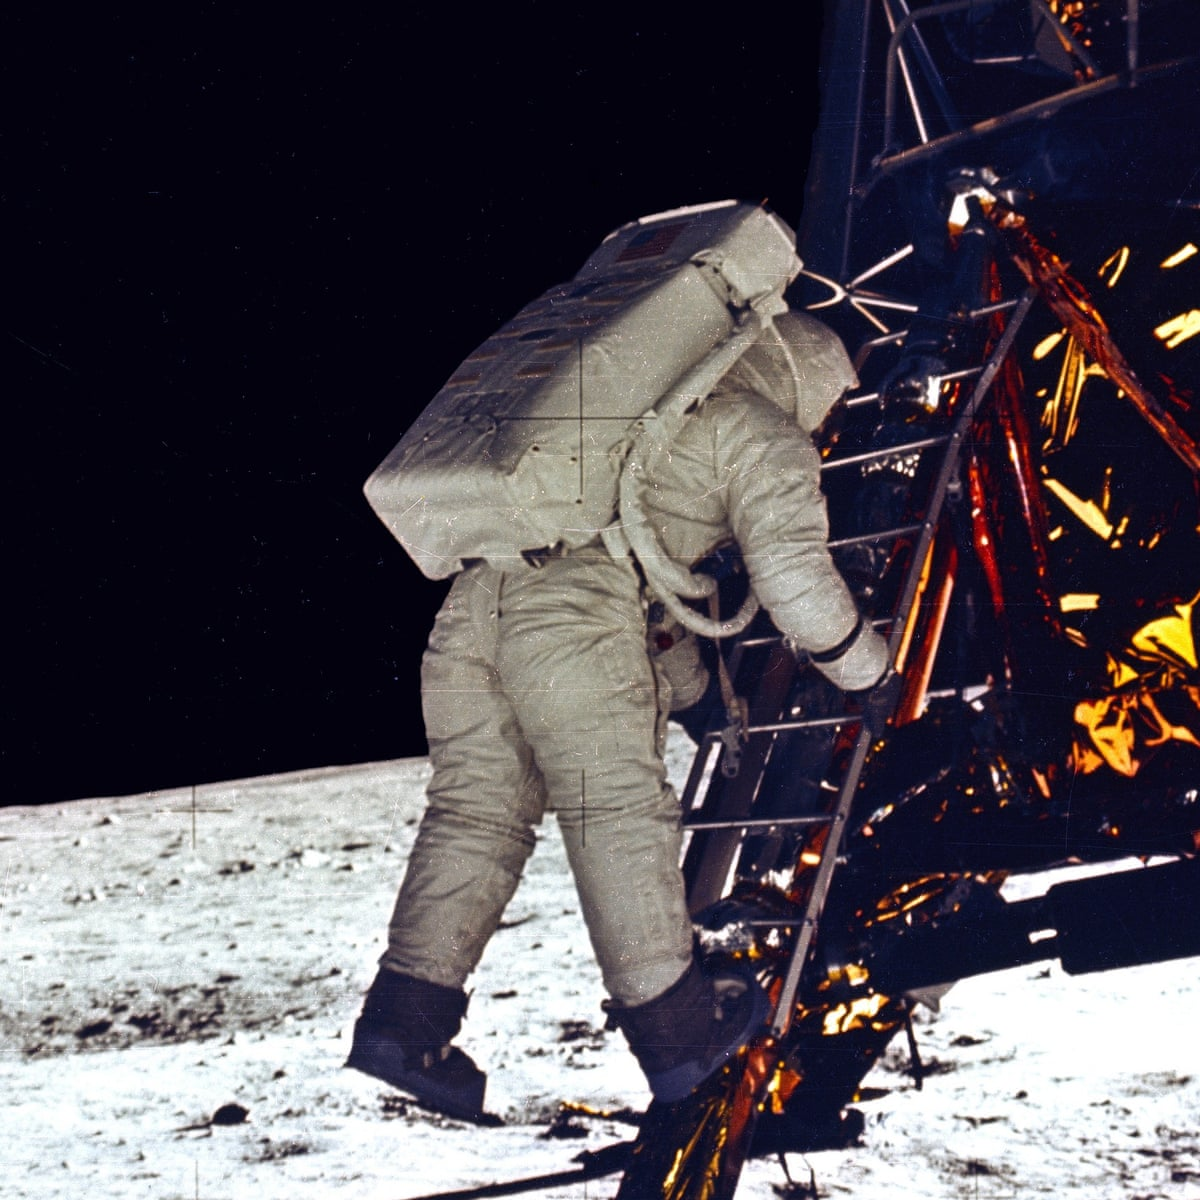 One Giant Lie Why So Many People Still Think The Moon Landings Were Faked The Moon The Guardian